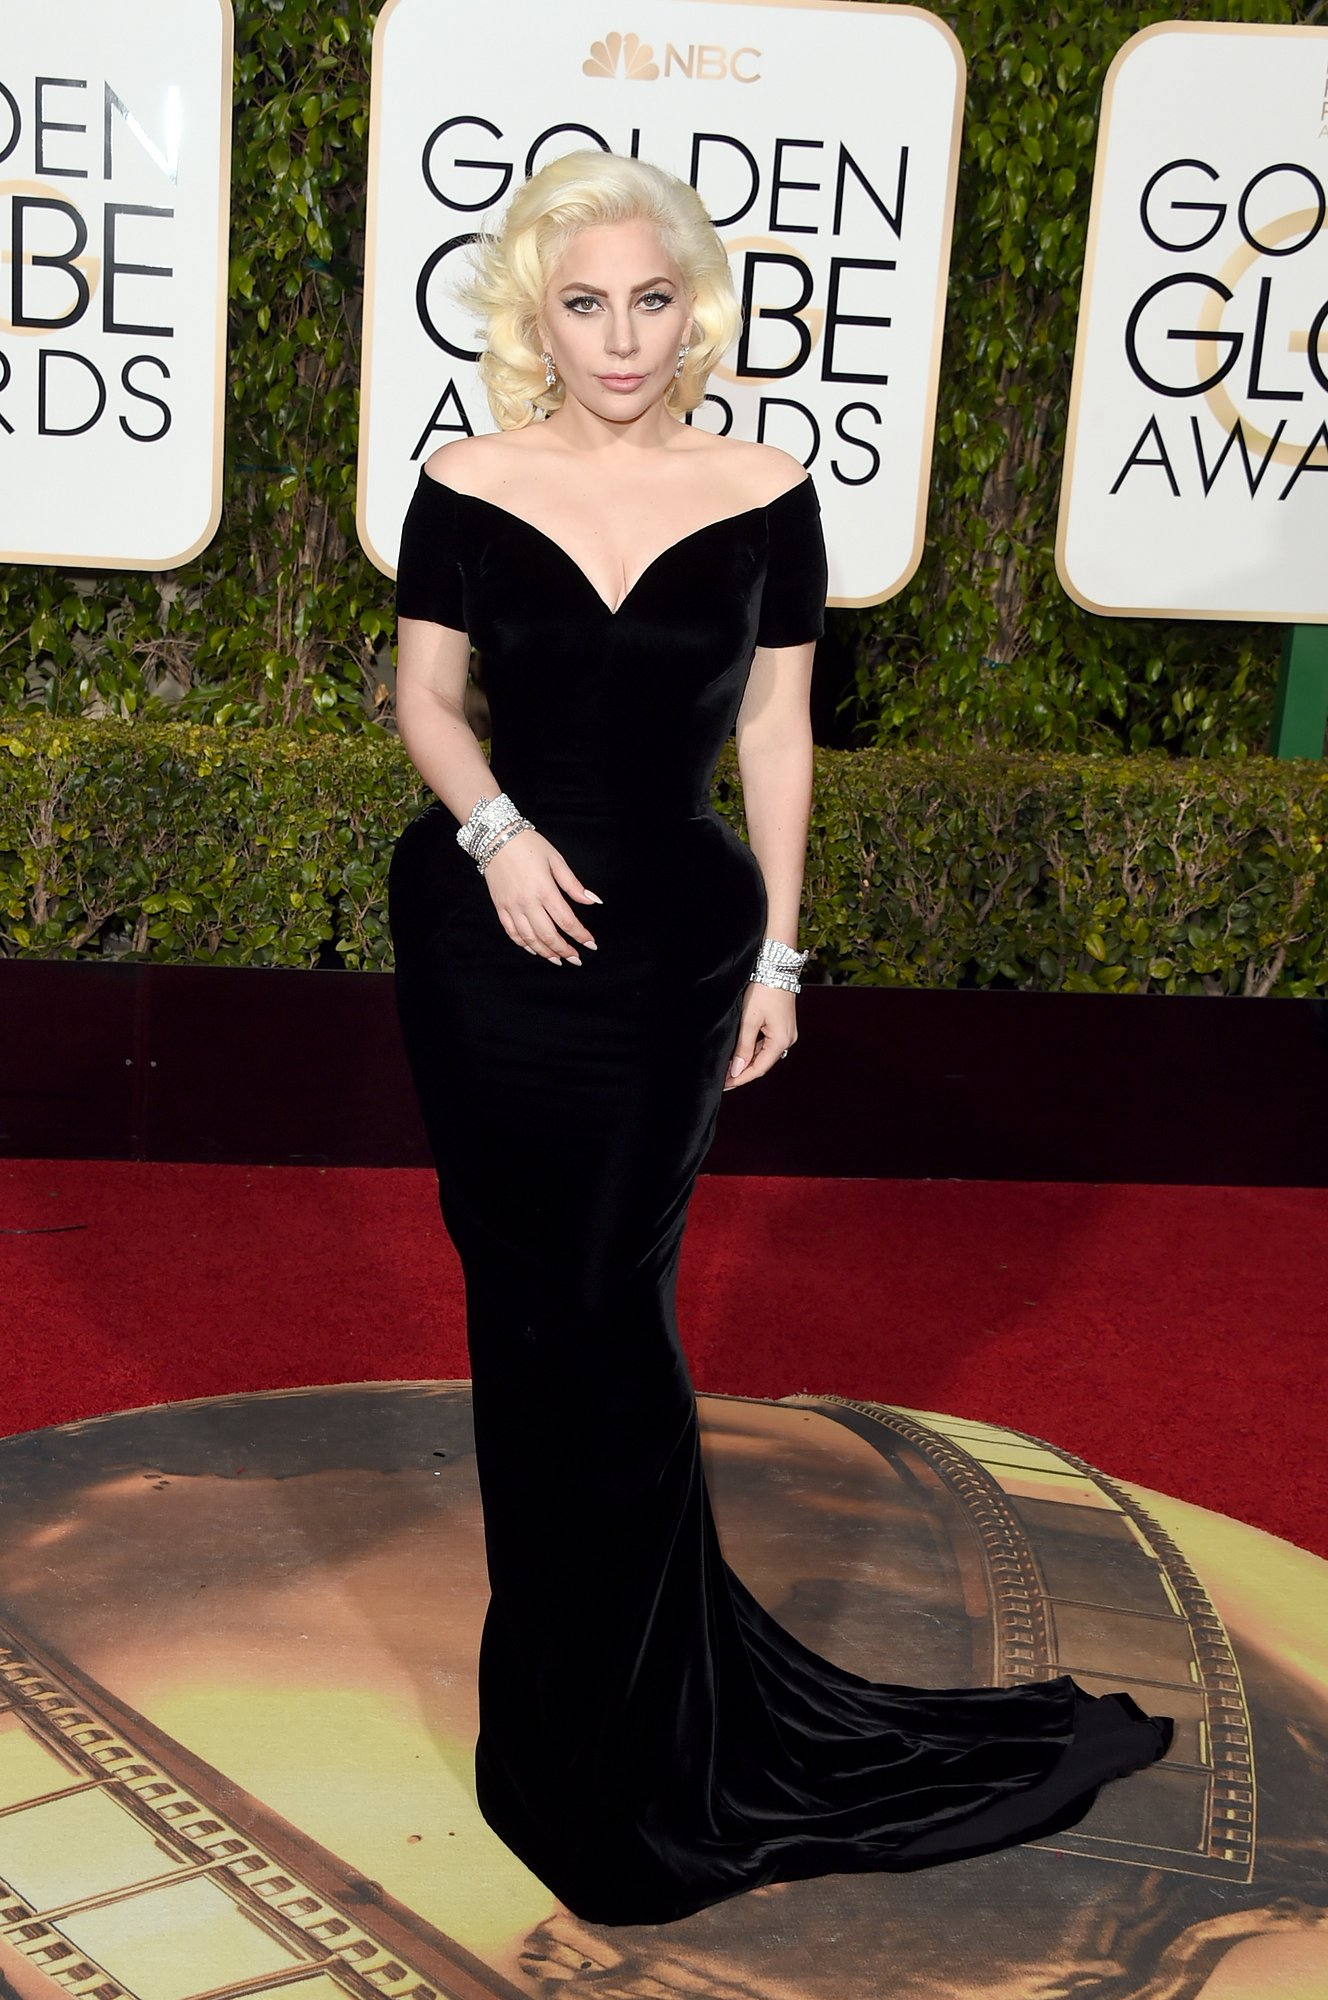 lady-gaga-golden-globes-2016.jpg